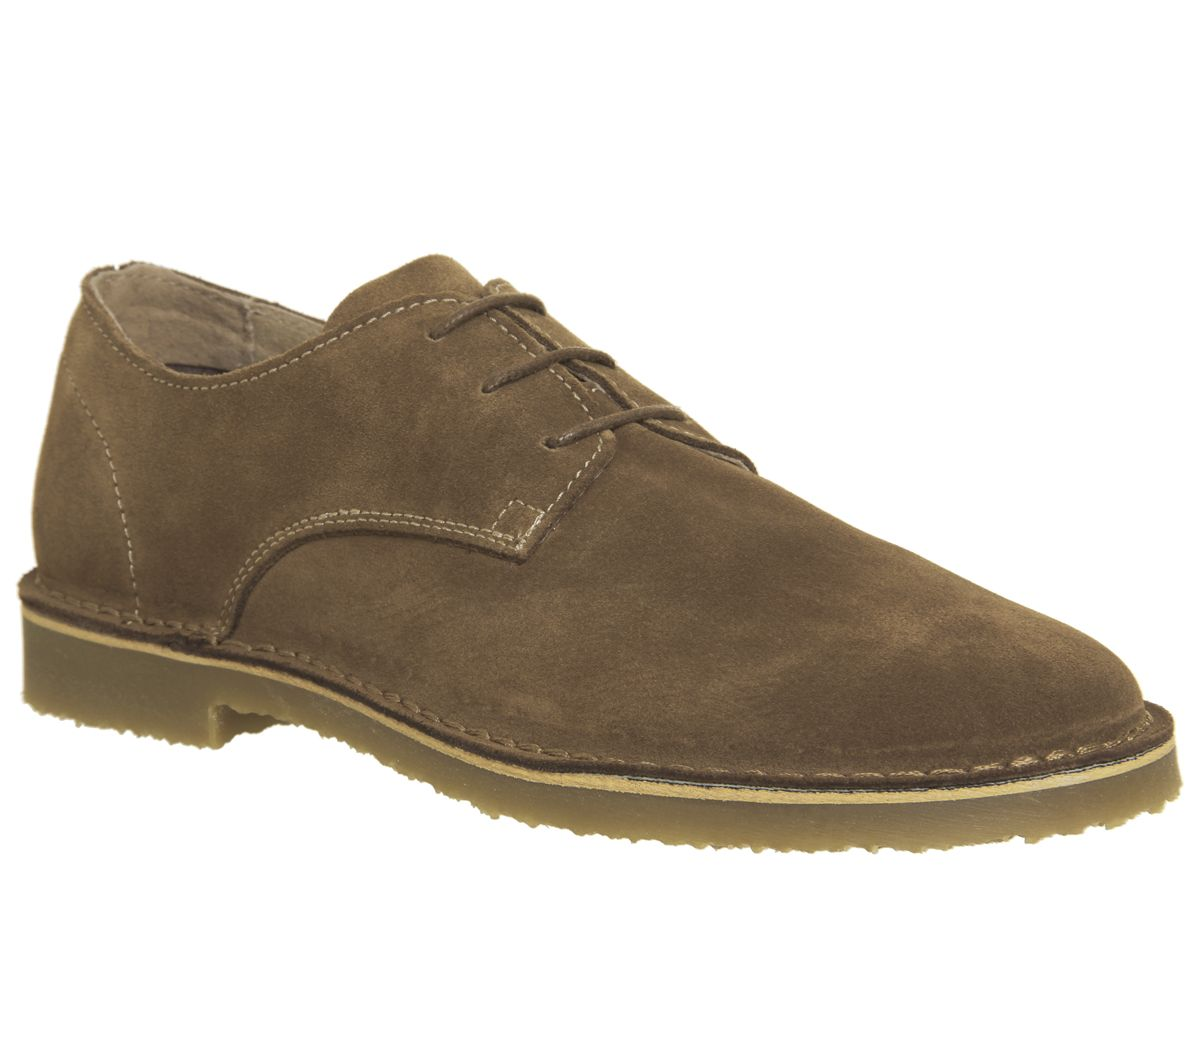 85bfce8f7 Office Inferno Desert Shoes Rust Suede - Casual